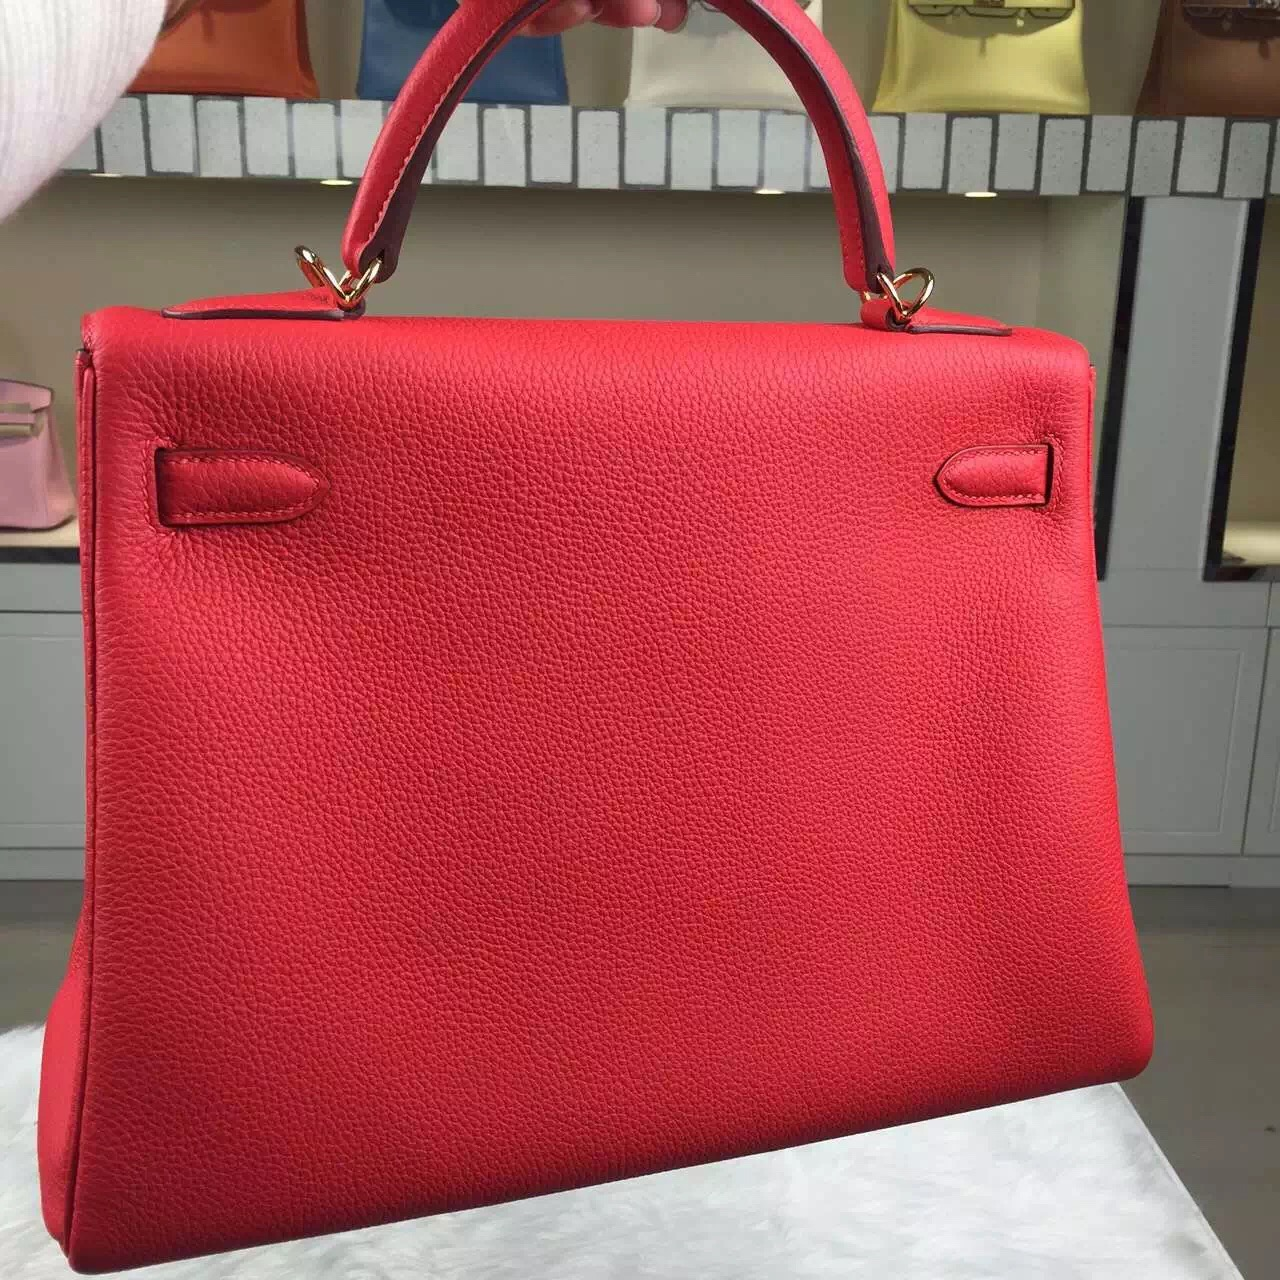 High Quality Hermes Kelly32 9T Flame Red Togo Leather Women's Bag